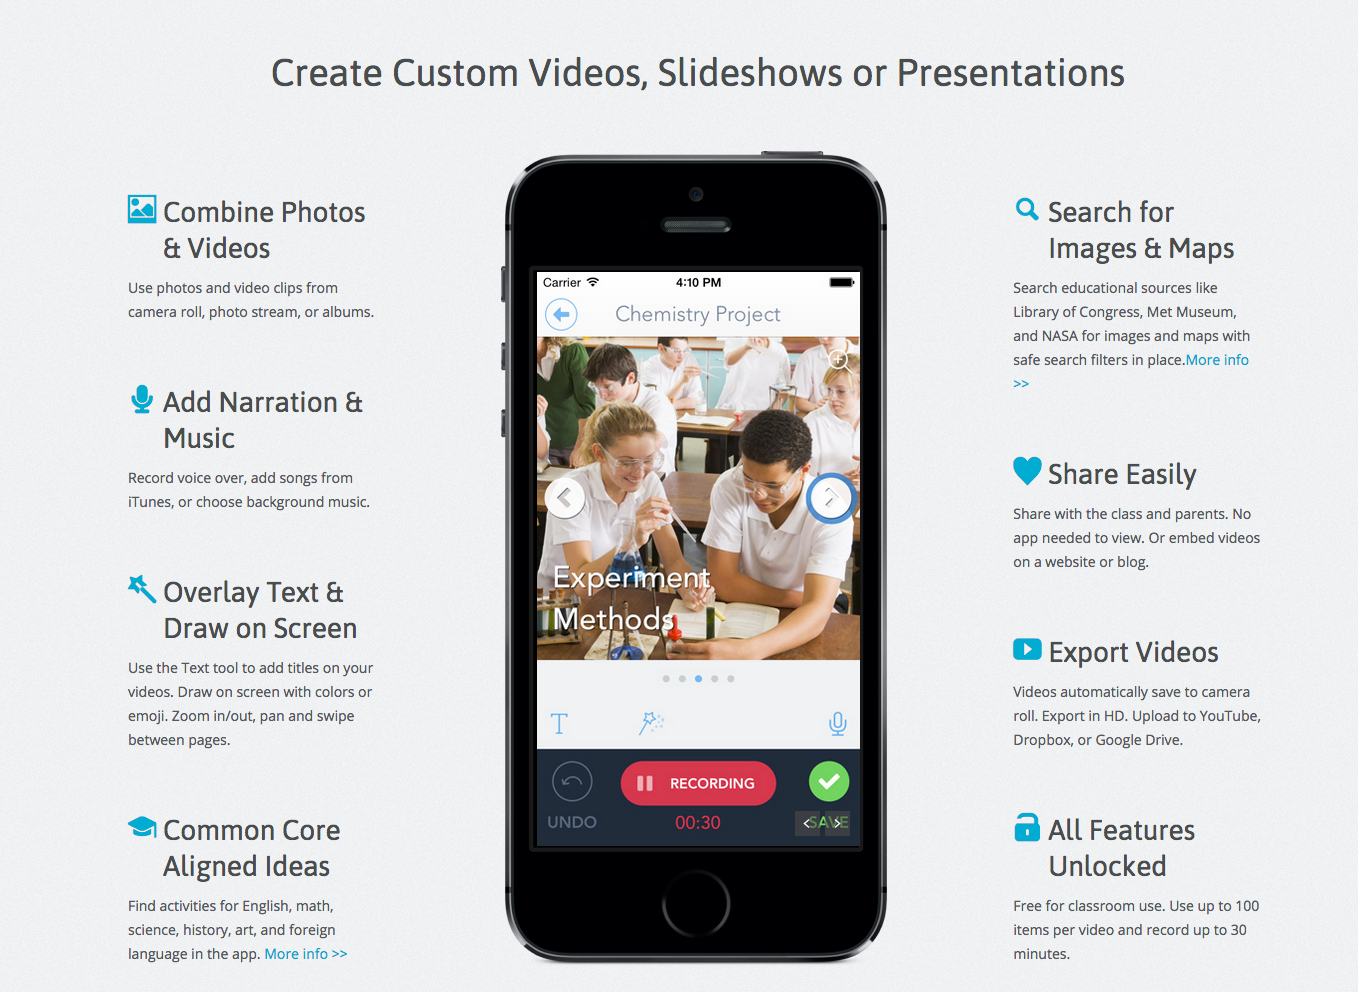 Nik's QuickShout: Create Speaking Activities Based on ...